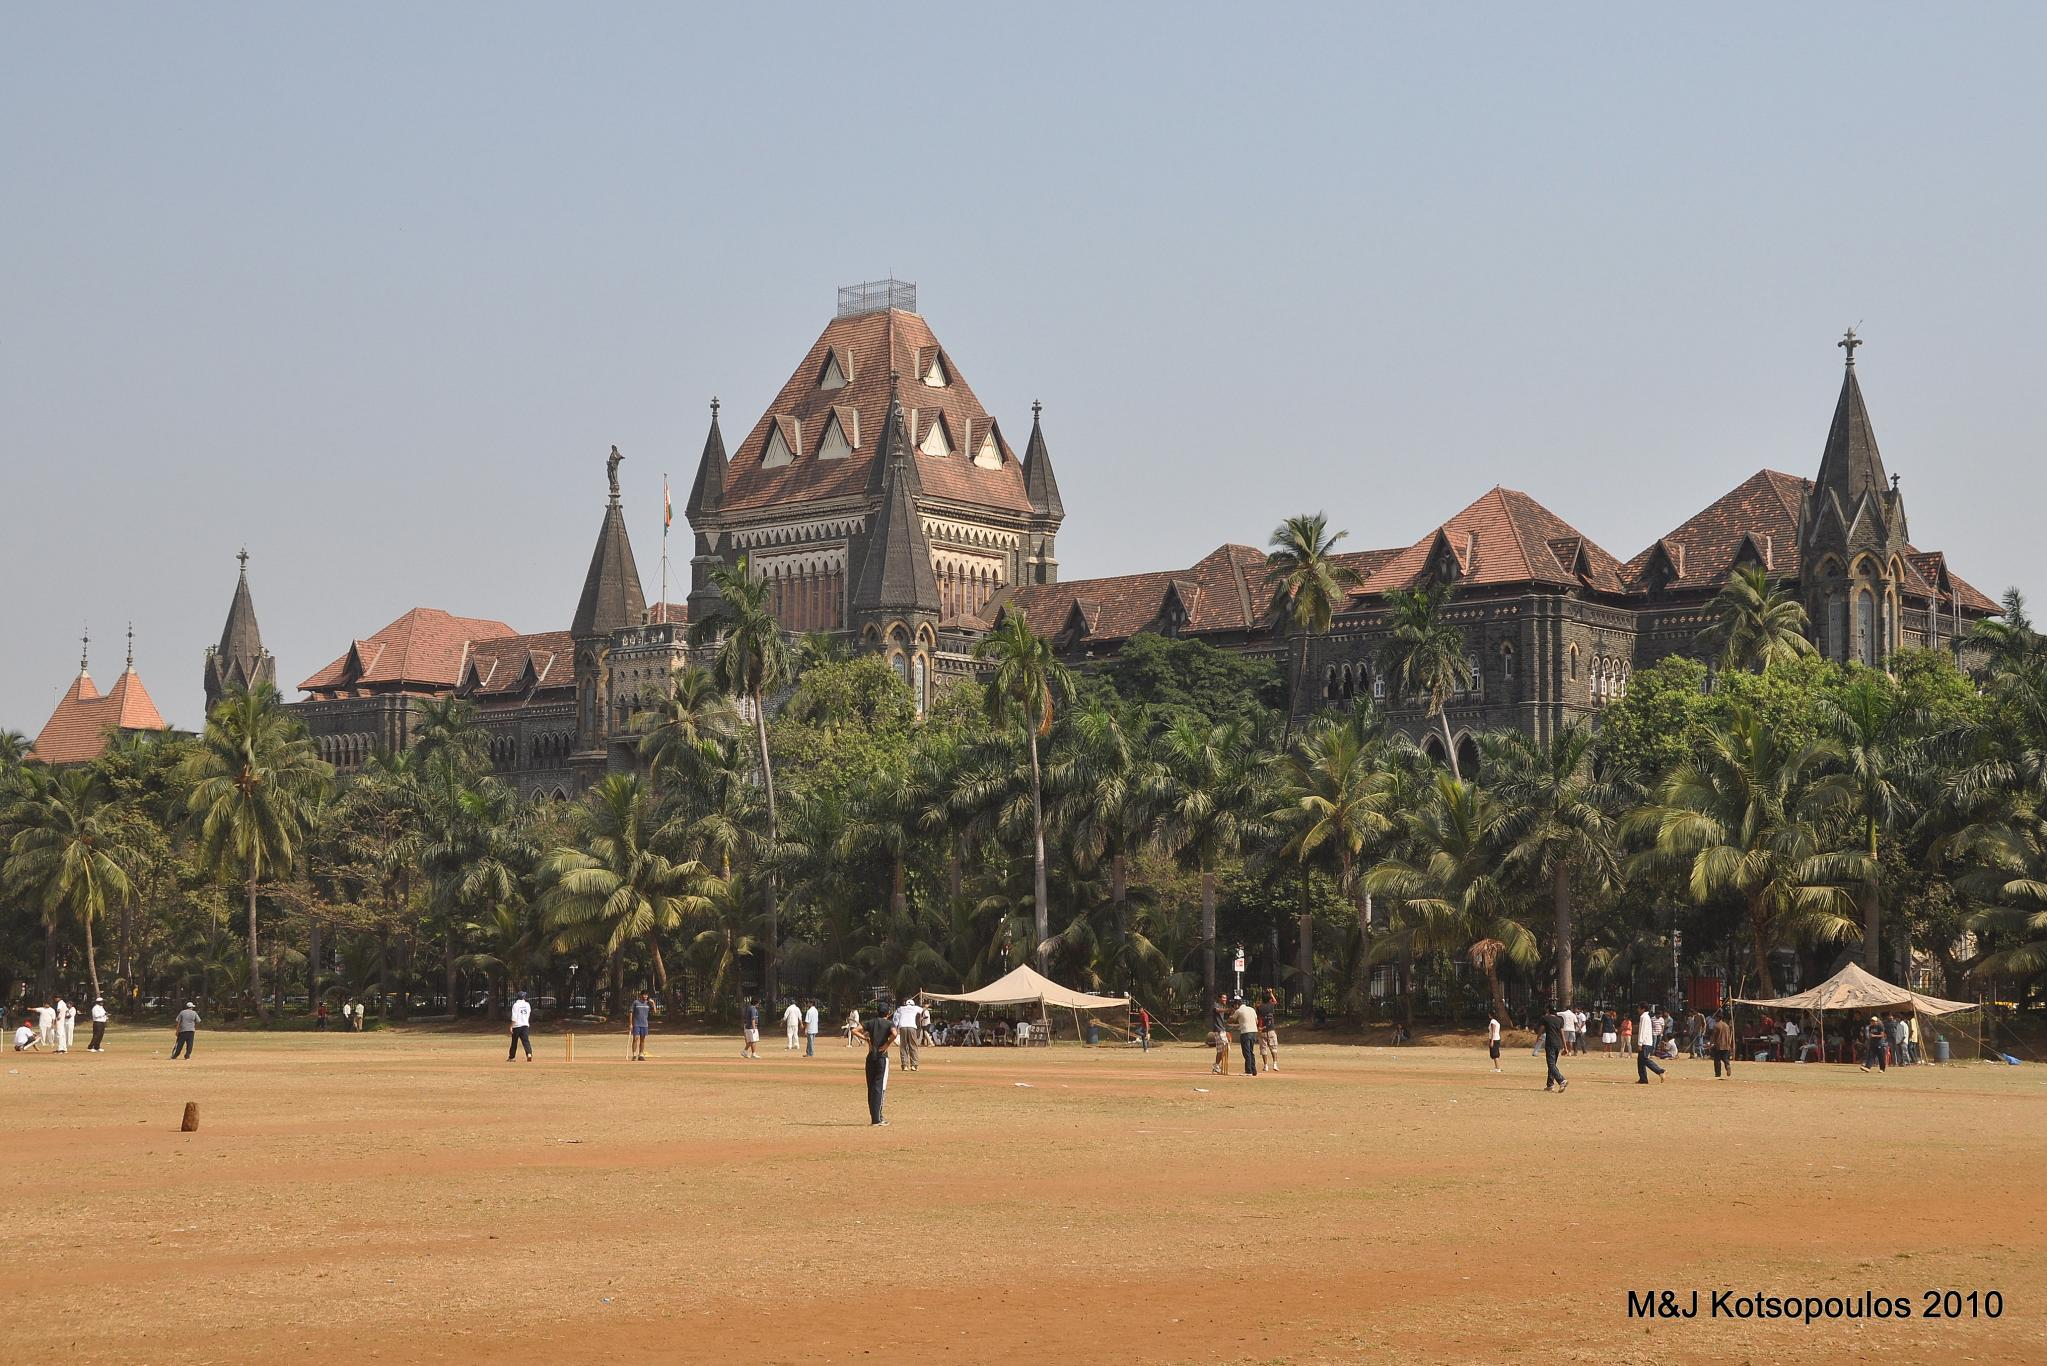 The Bombay High Court Wants a Free Hit in the IPL. But Where's the No Ball?